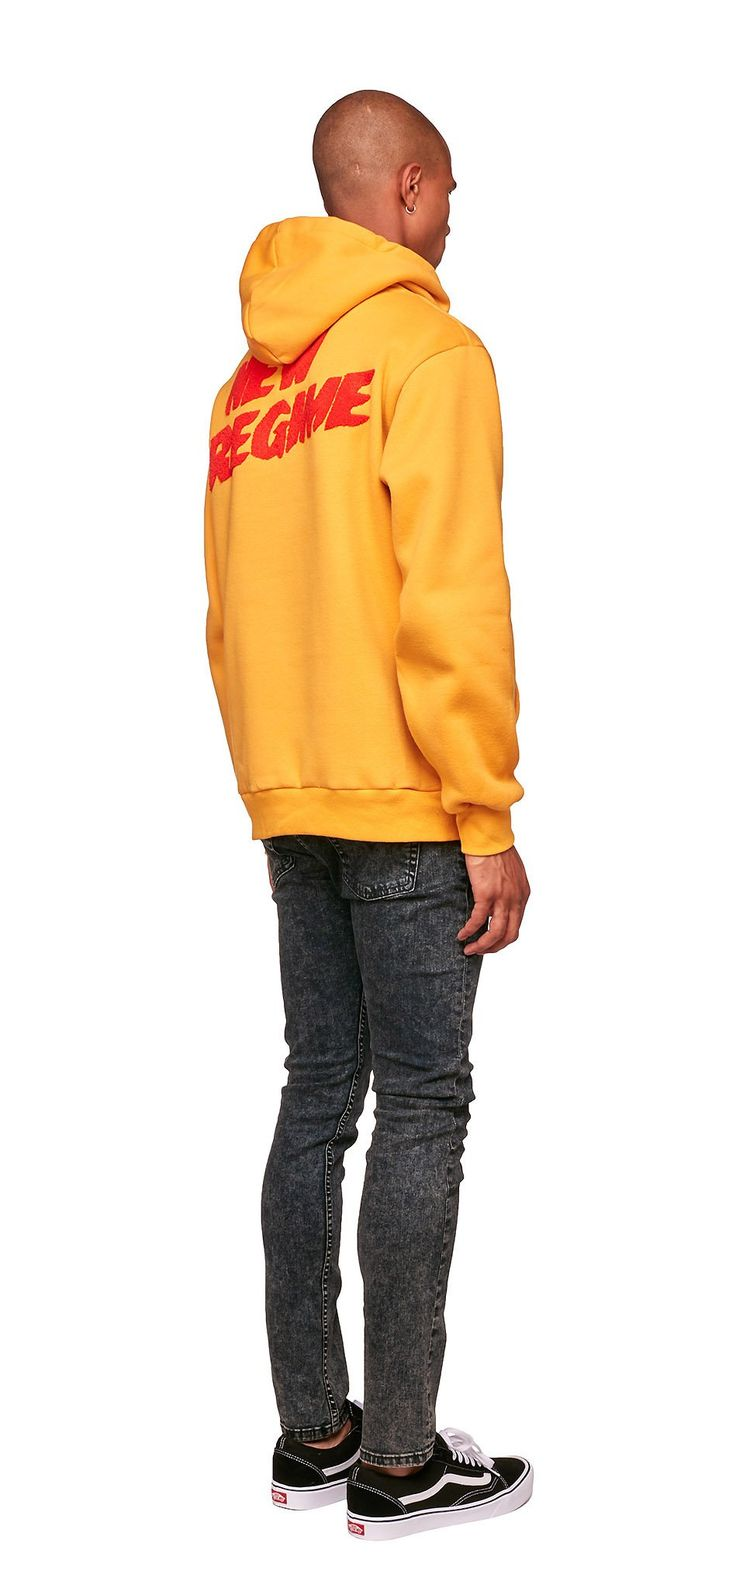 Signature Logo Hoodie (Mustard) / Made ofsoft-touch cotton fleece,this hoodie features a red New Regime loop terry embroidery back logo. #fw17